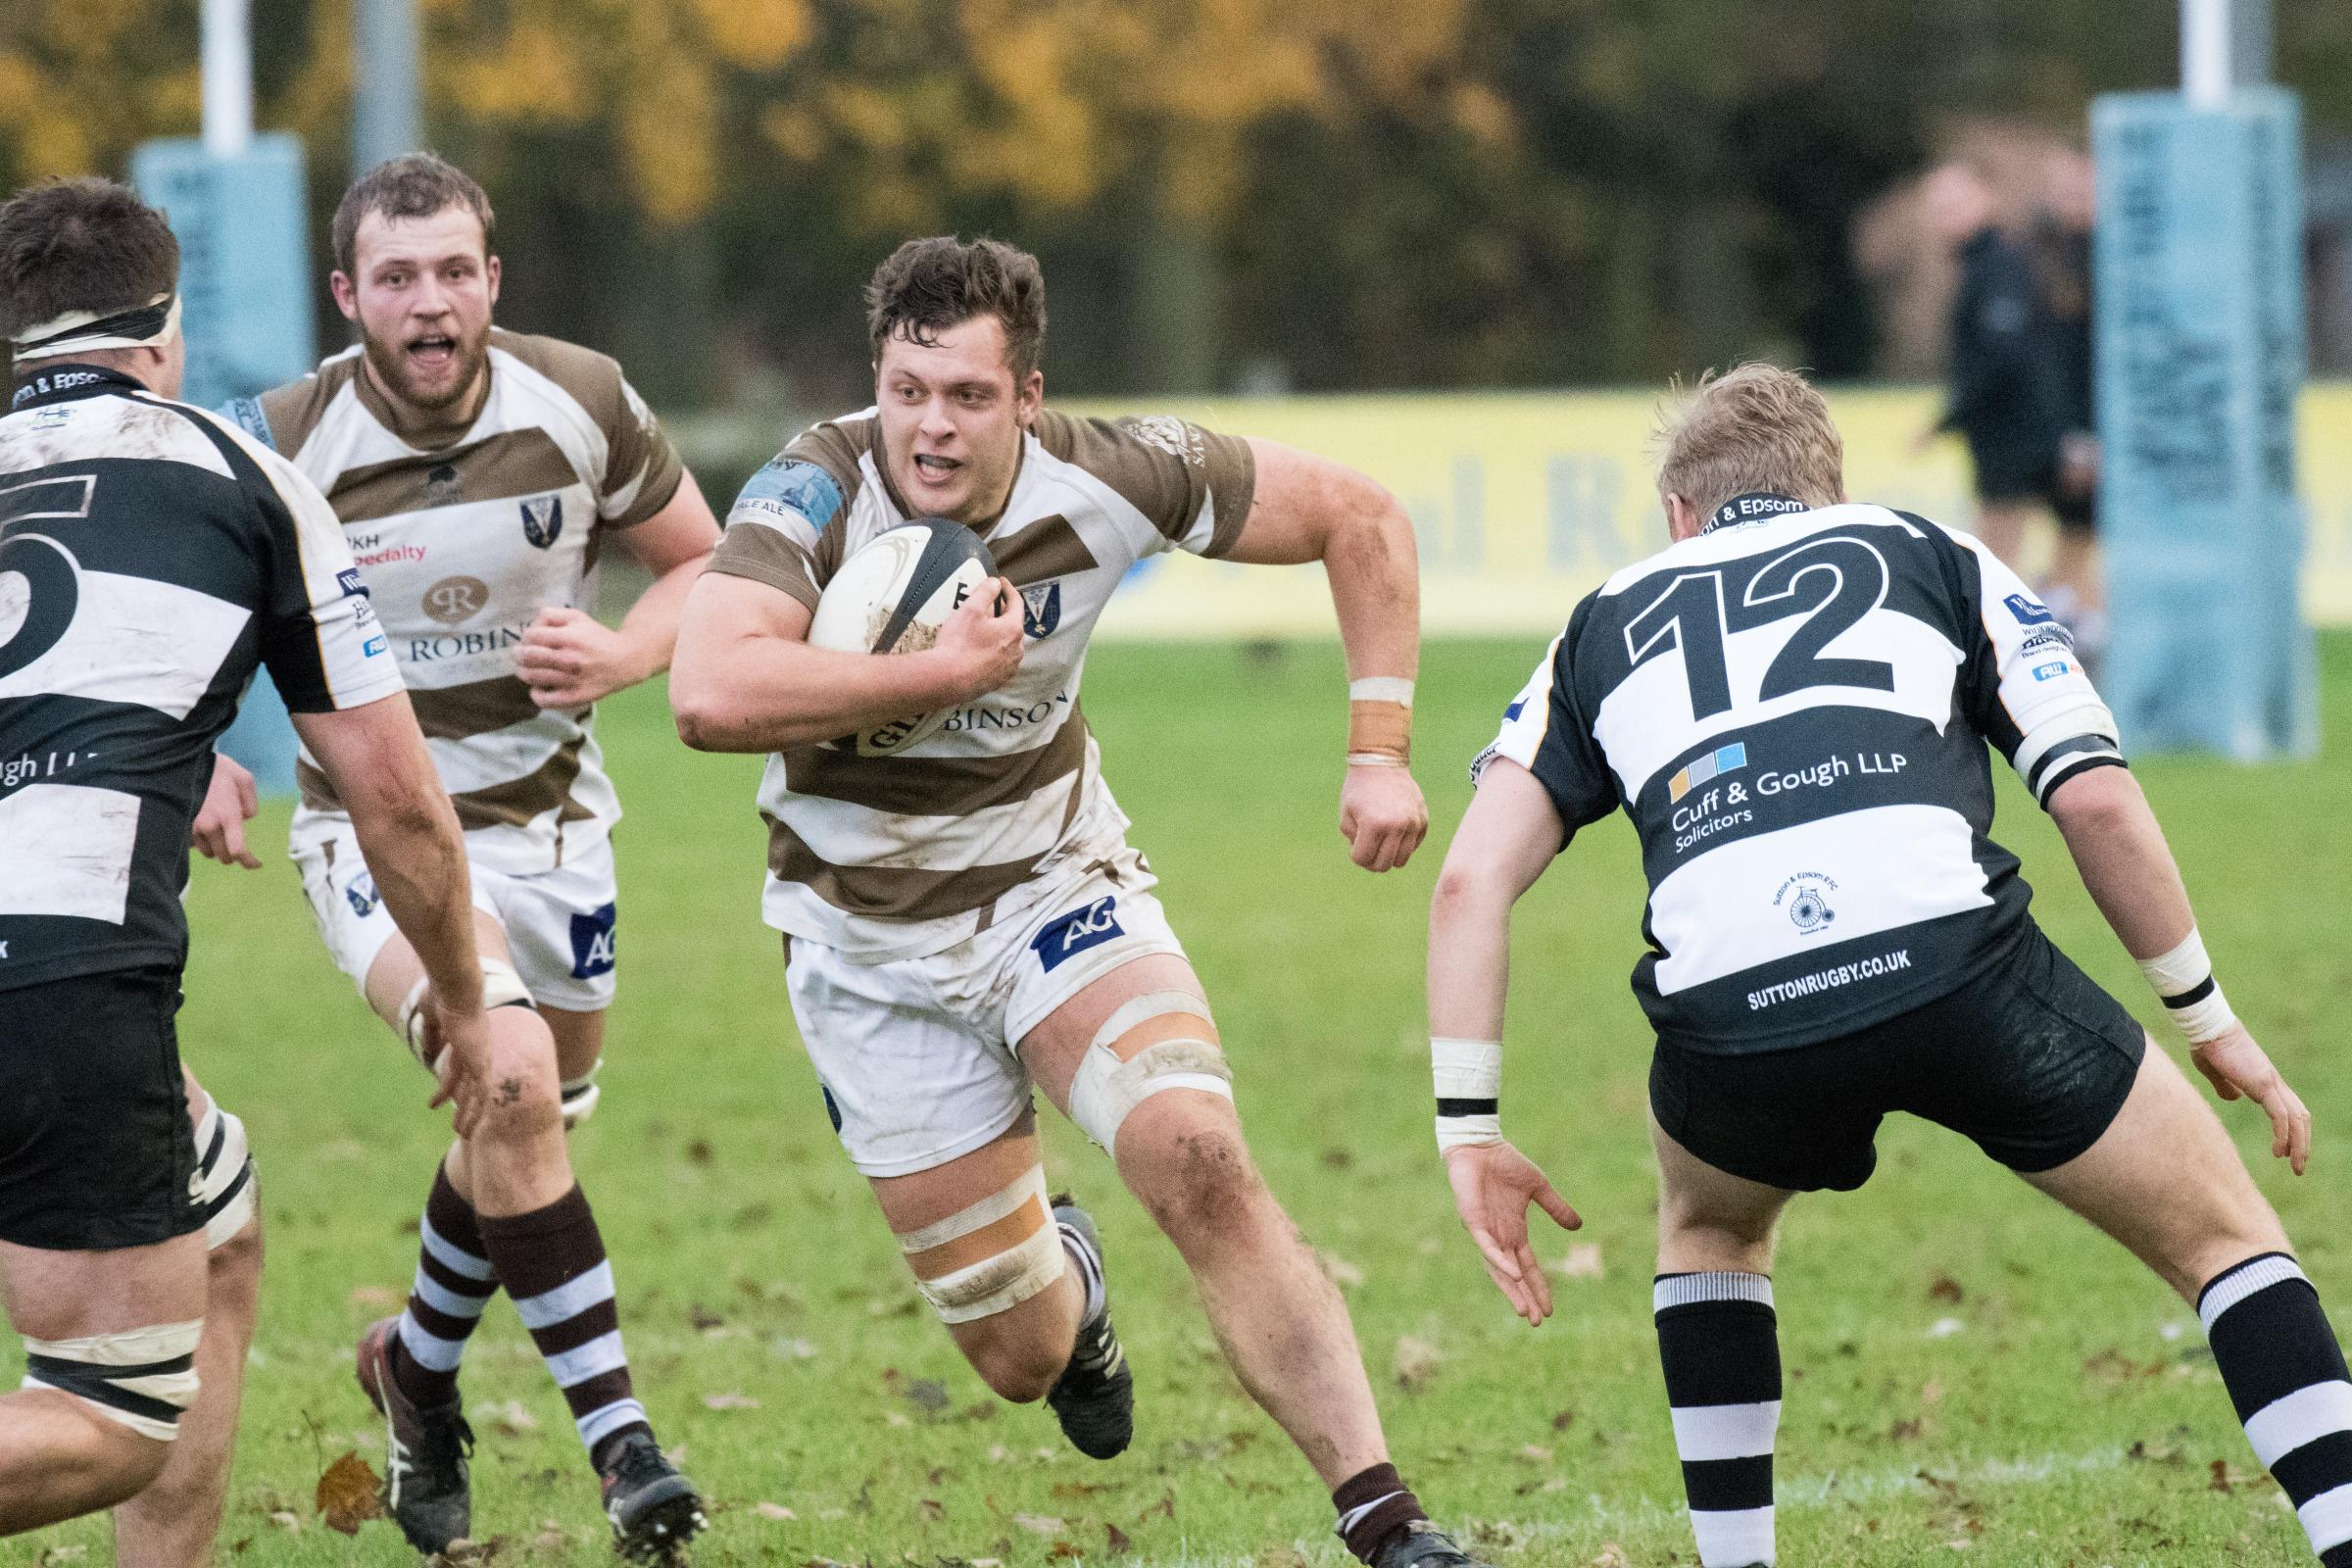 Switching to centre - Southend Saxons' George Wood